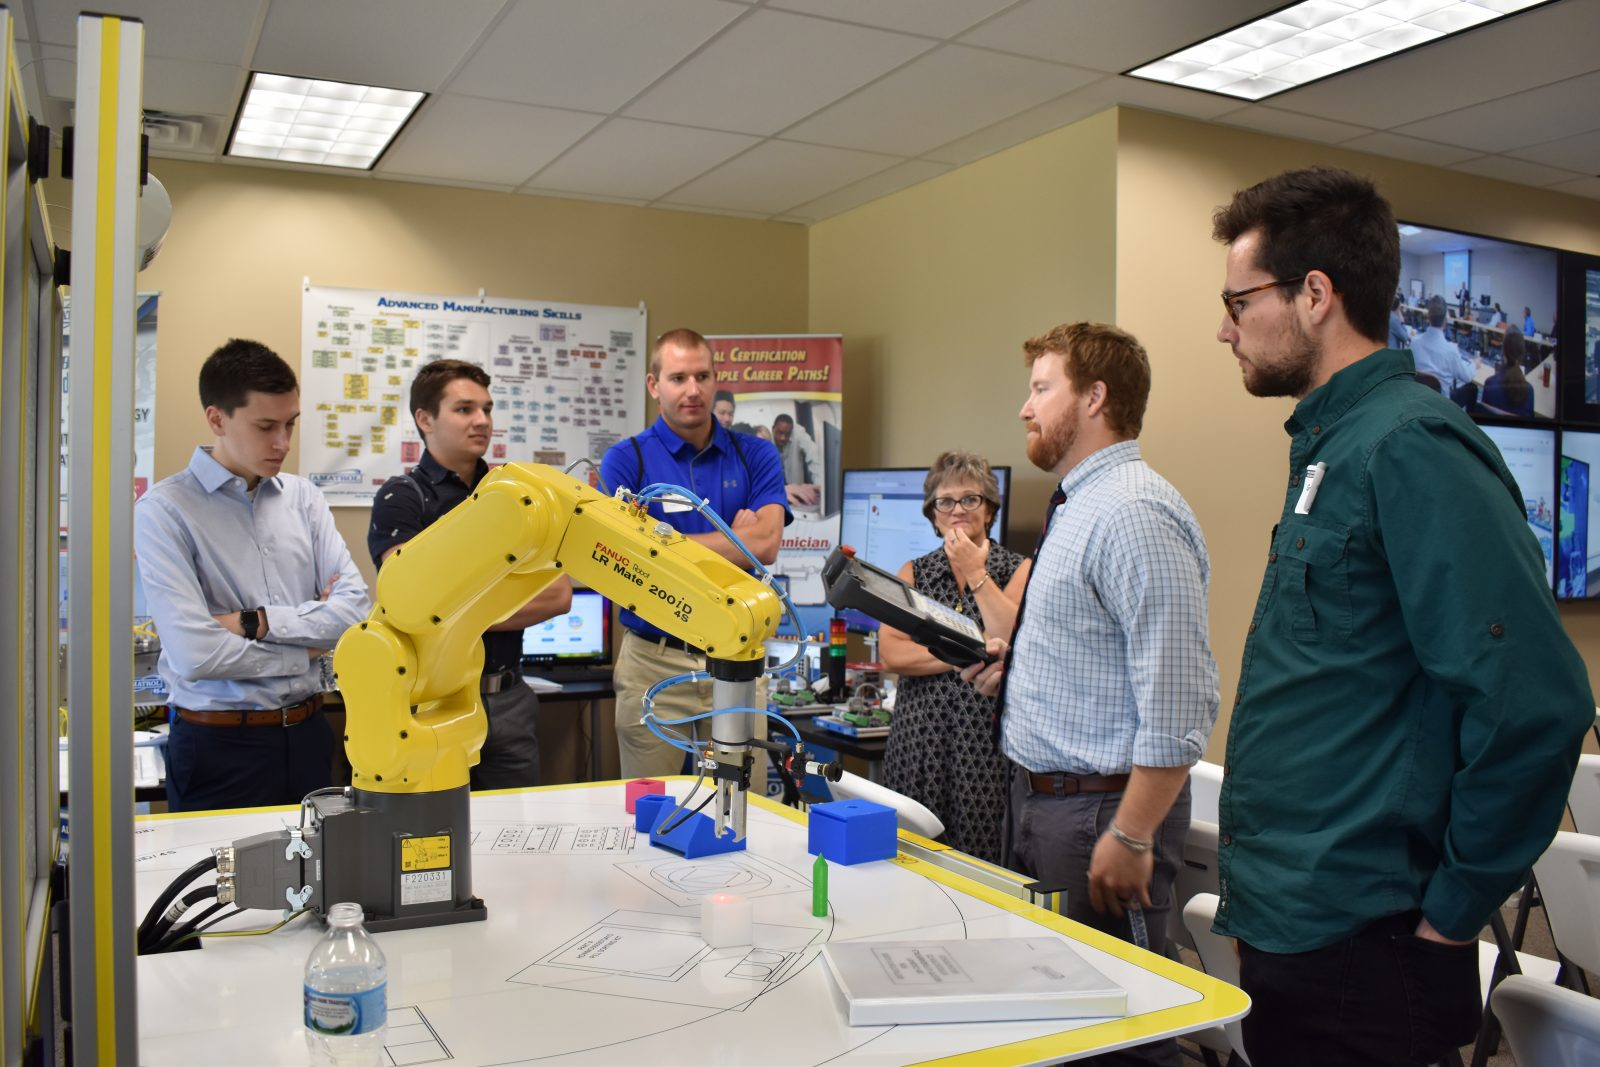 Milwaukee Intern Summit attendees get a look at FANUC educational robots at the LAB Midwest Tech Center